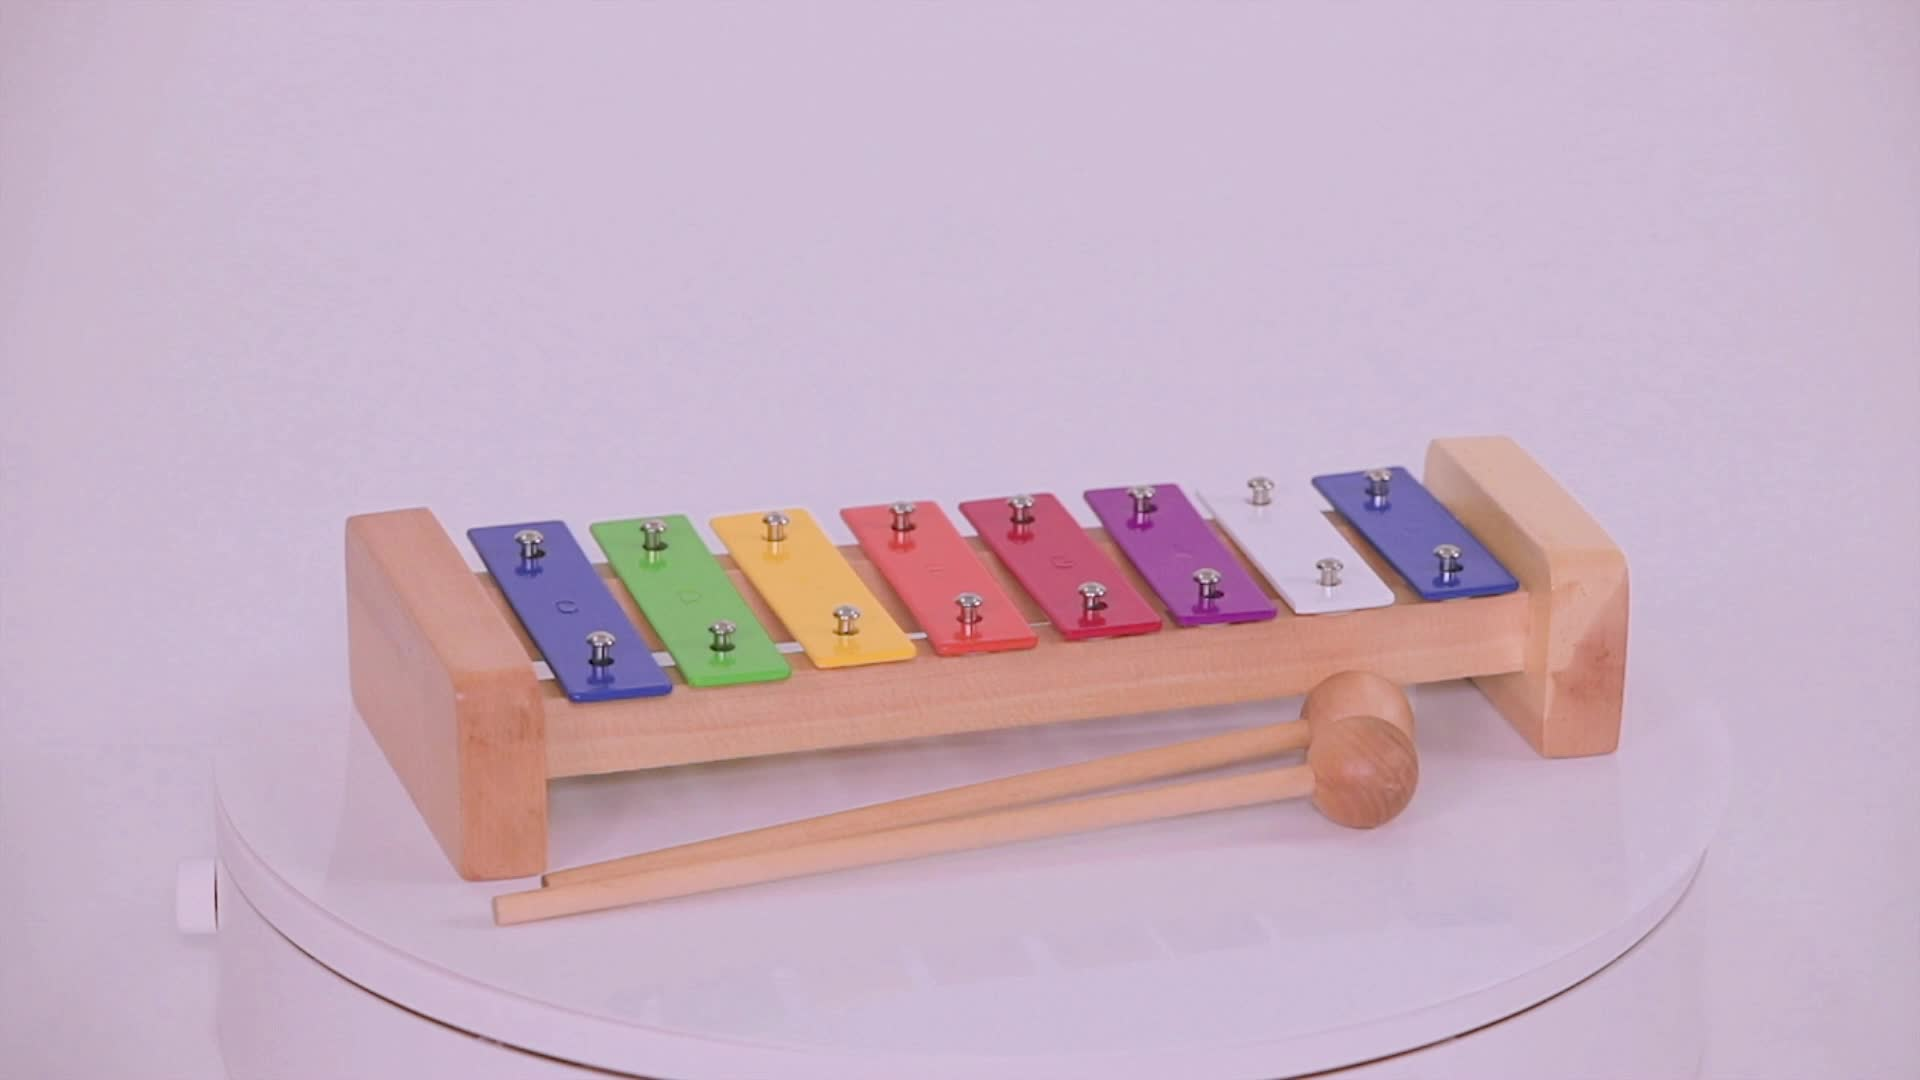 Orff instrument 8-tone steel plate piano, 8-tone Metallophone early education educational toy kindergarten teaching aids